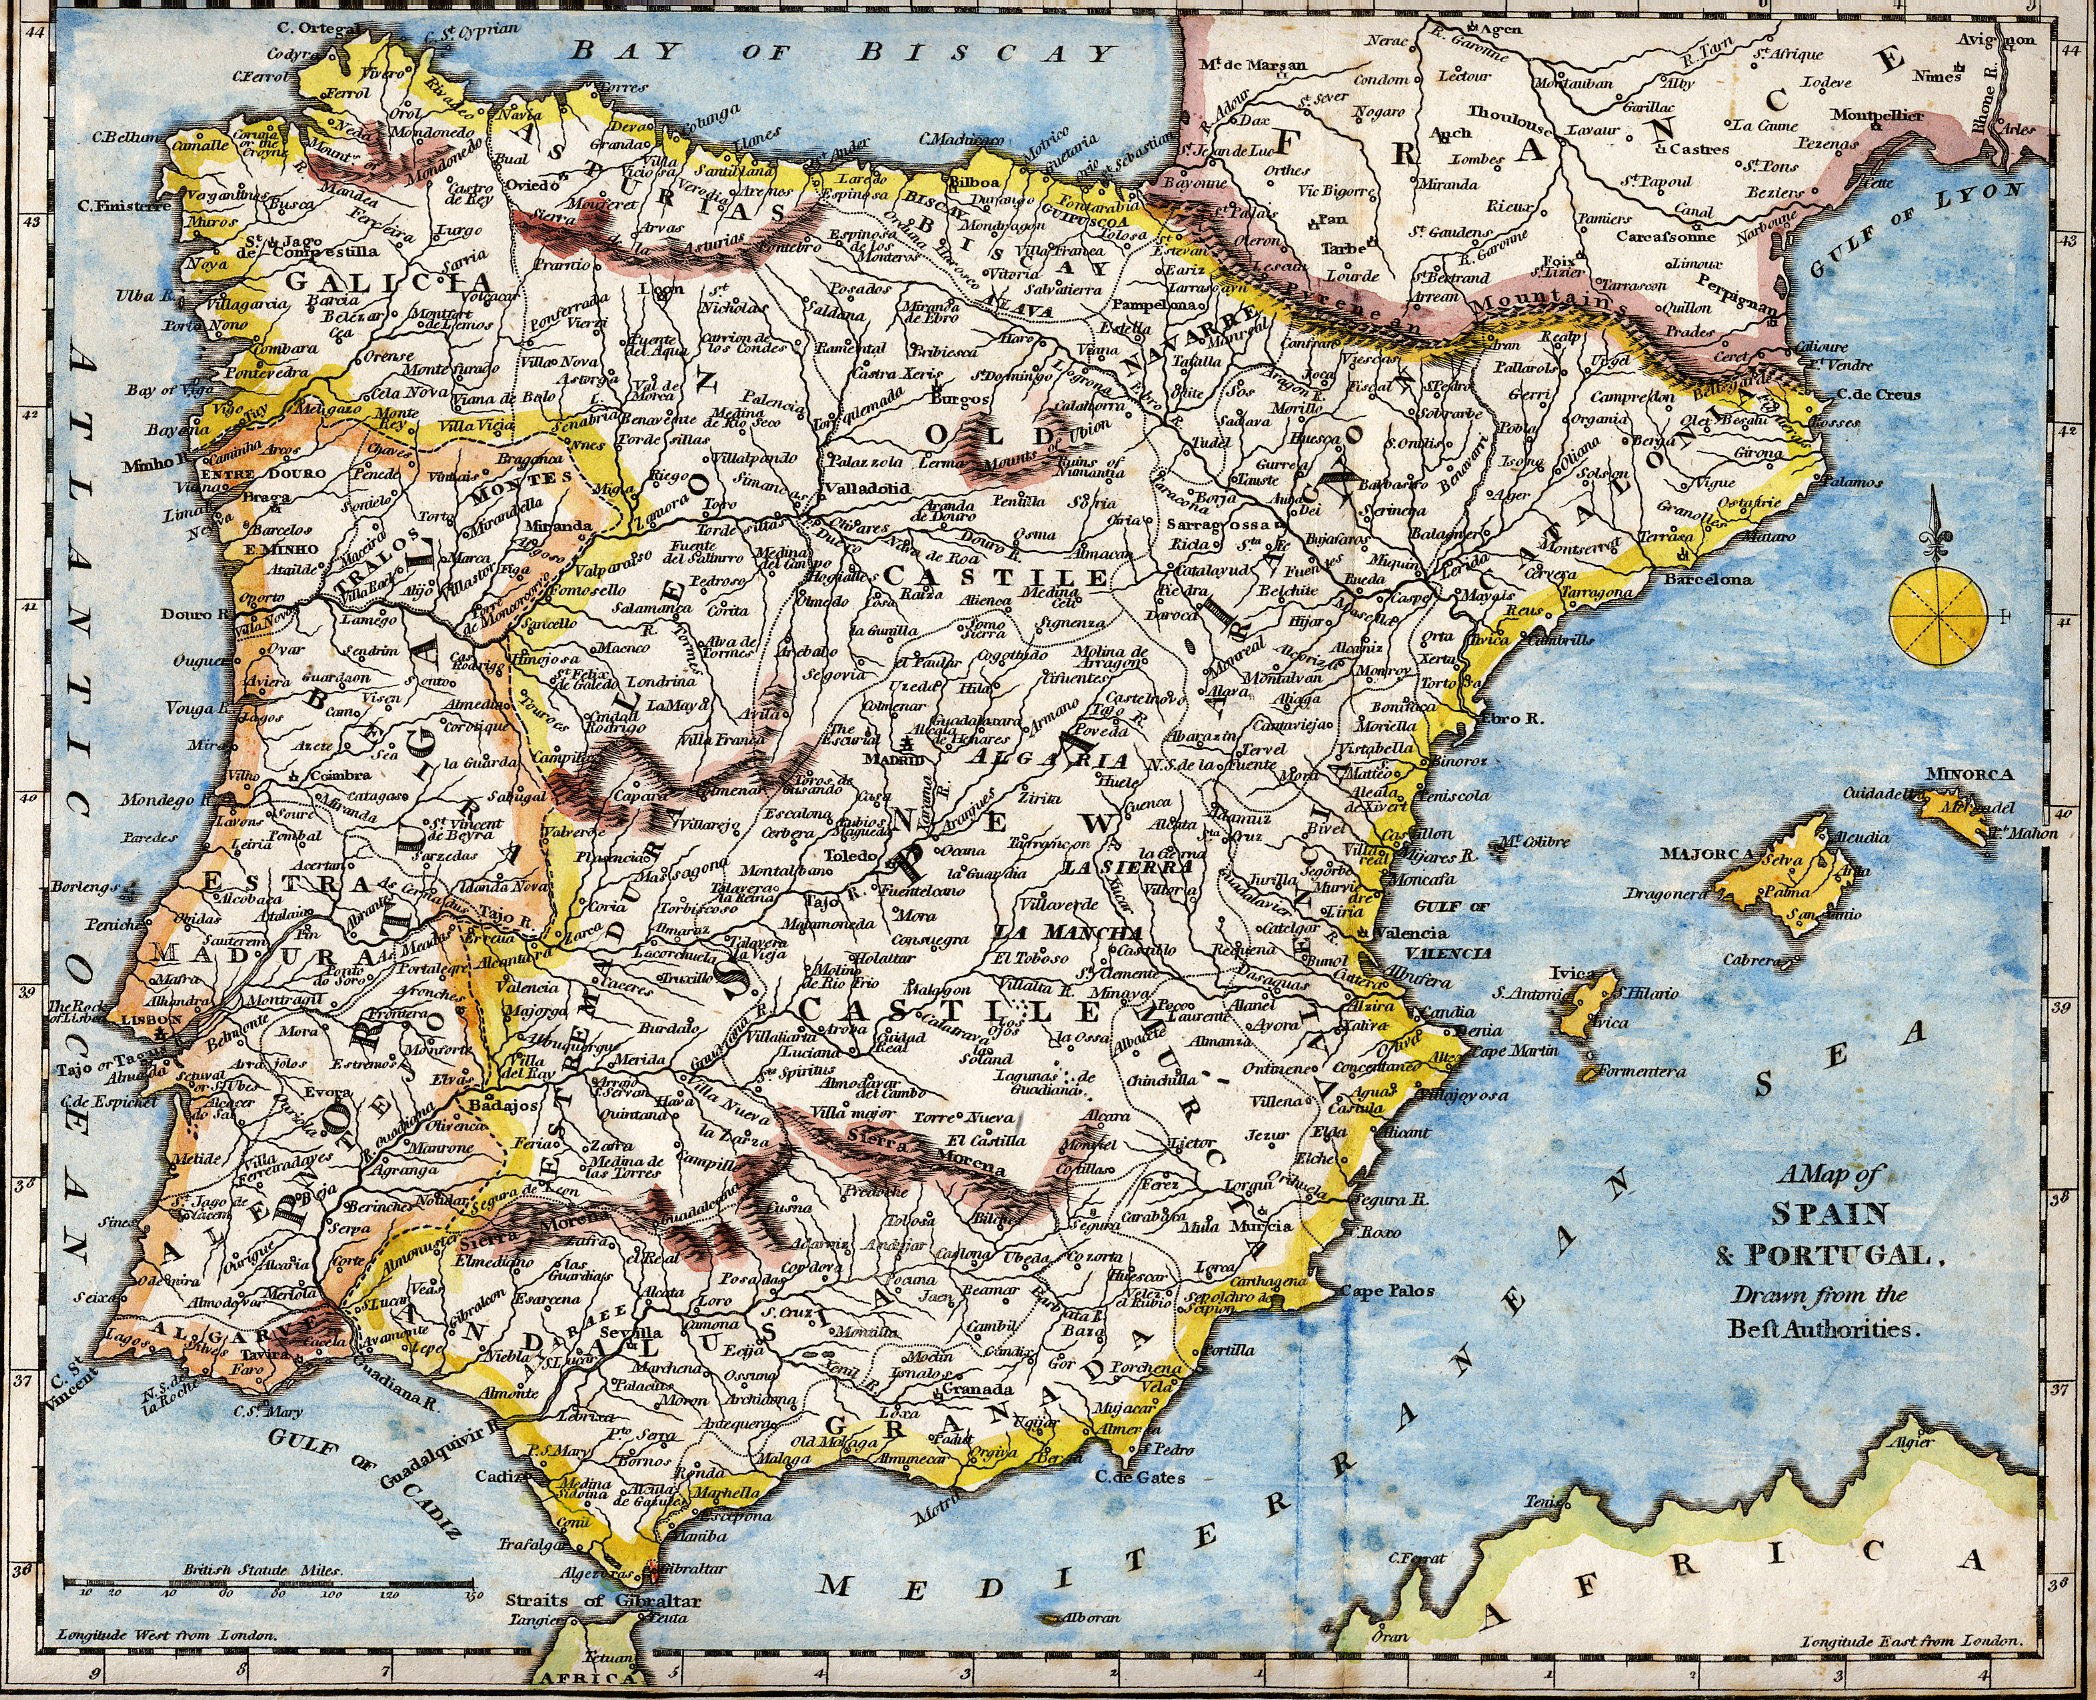 an 18th century map of the iberian peninsula